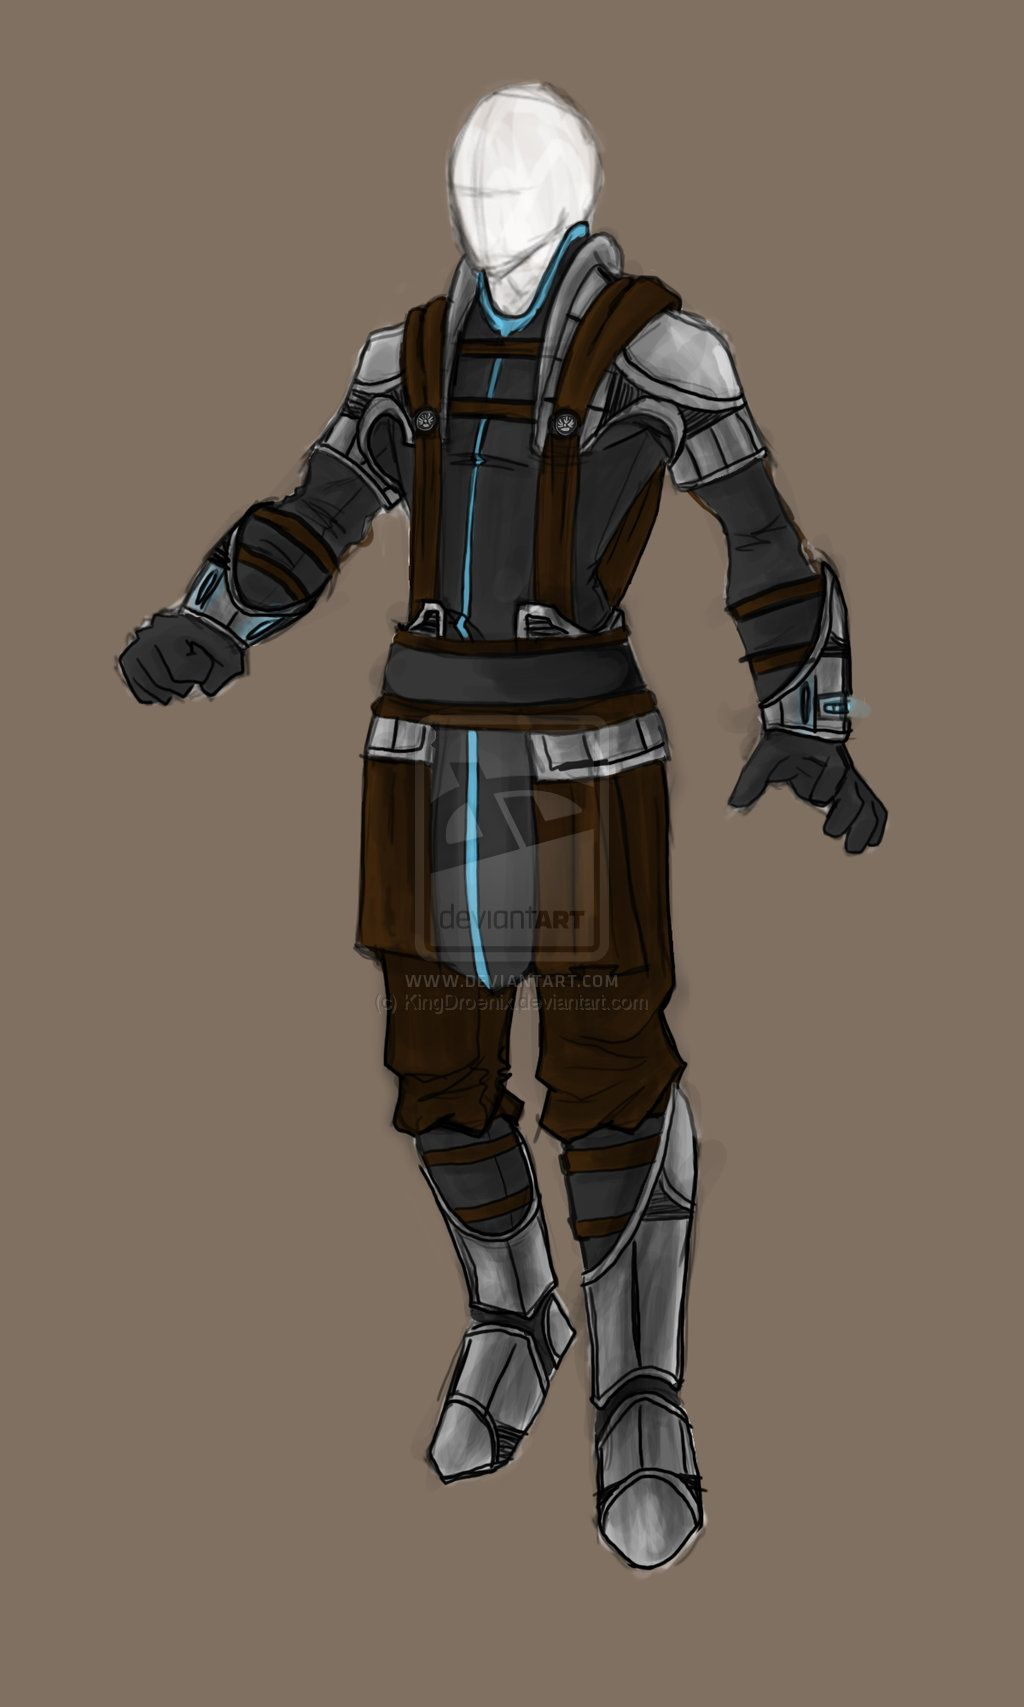 swtor jedi guardian concept by kingdroenix jedi costume. Black Bedroom Furniture Sets. Home Design Ideas